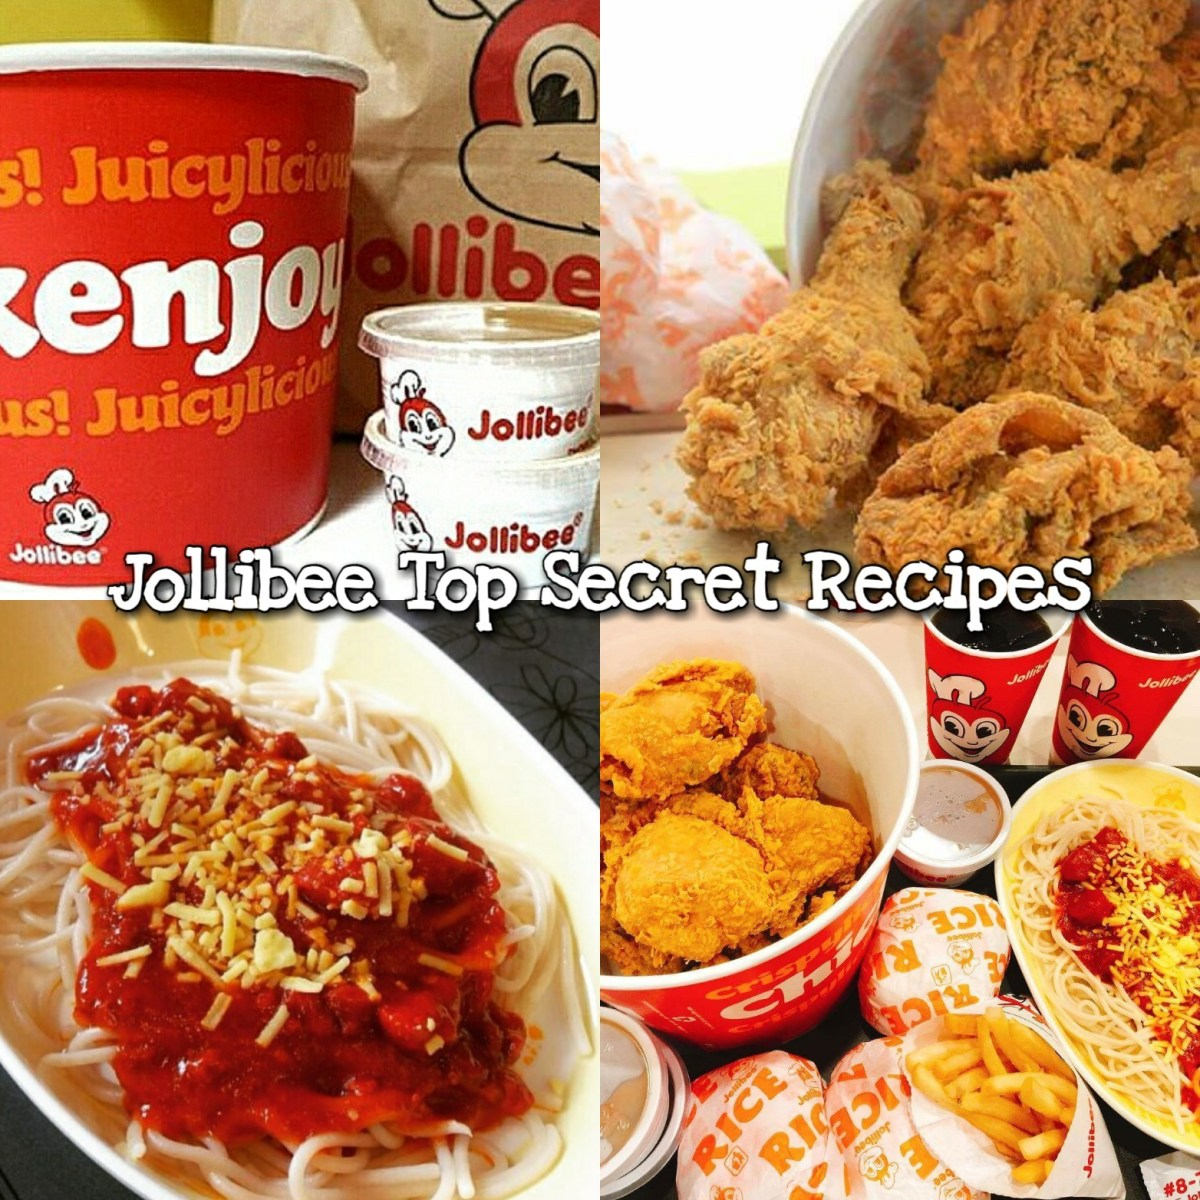 Jollibee Top Secret Recipes